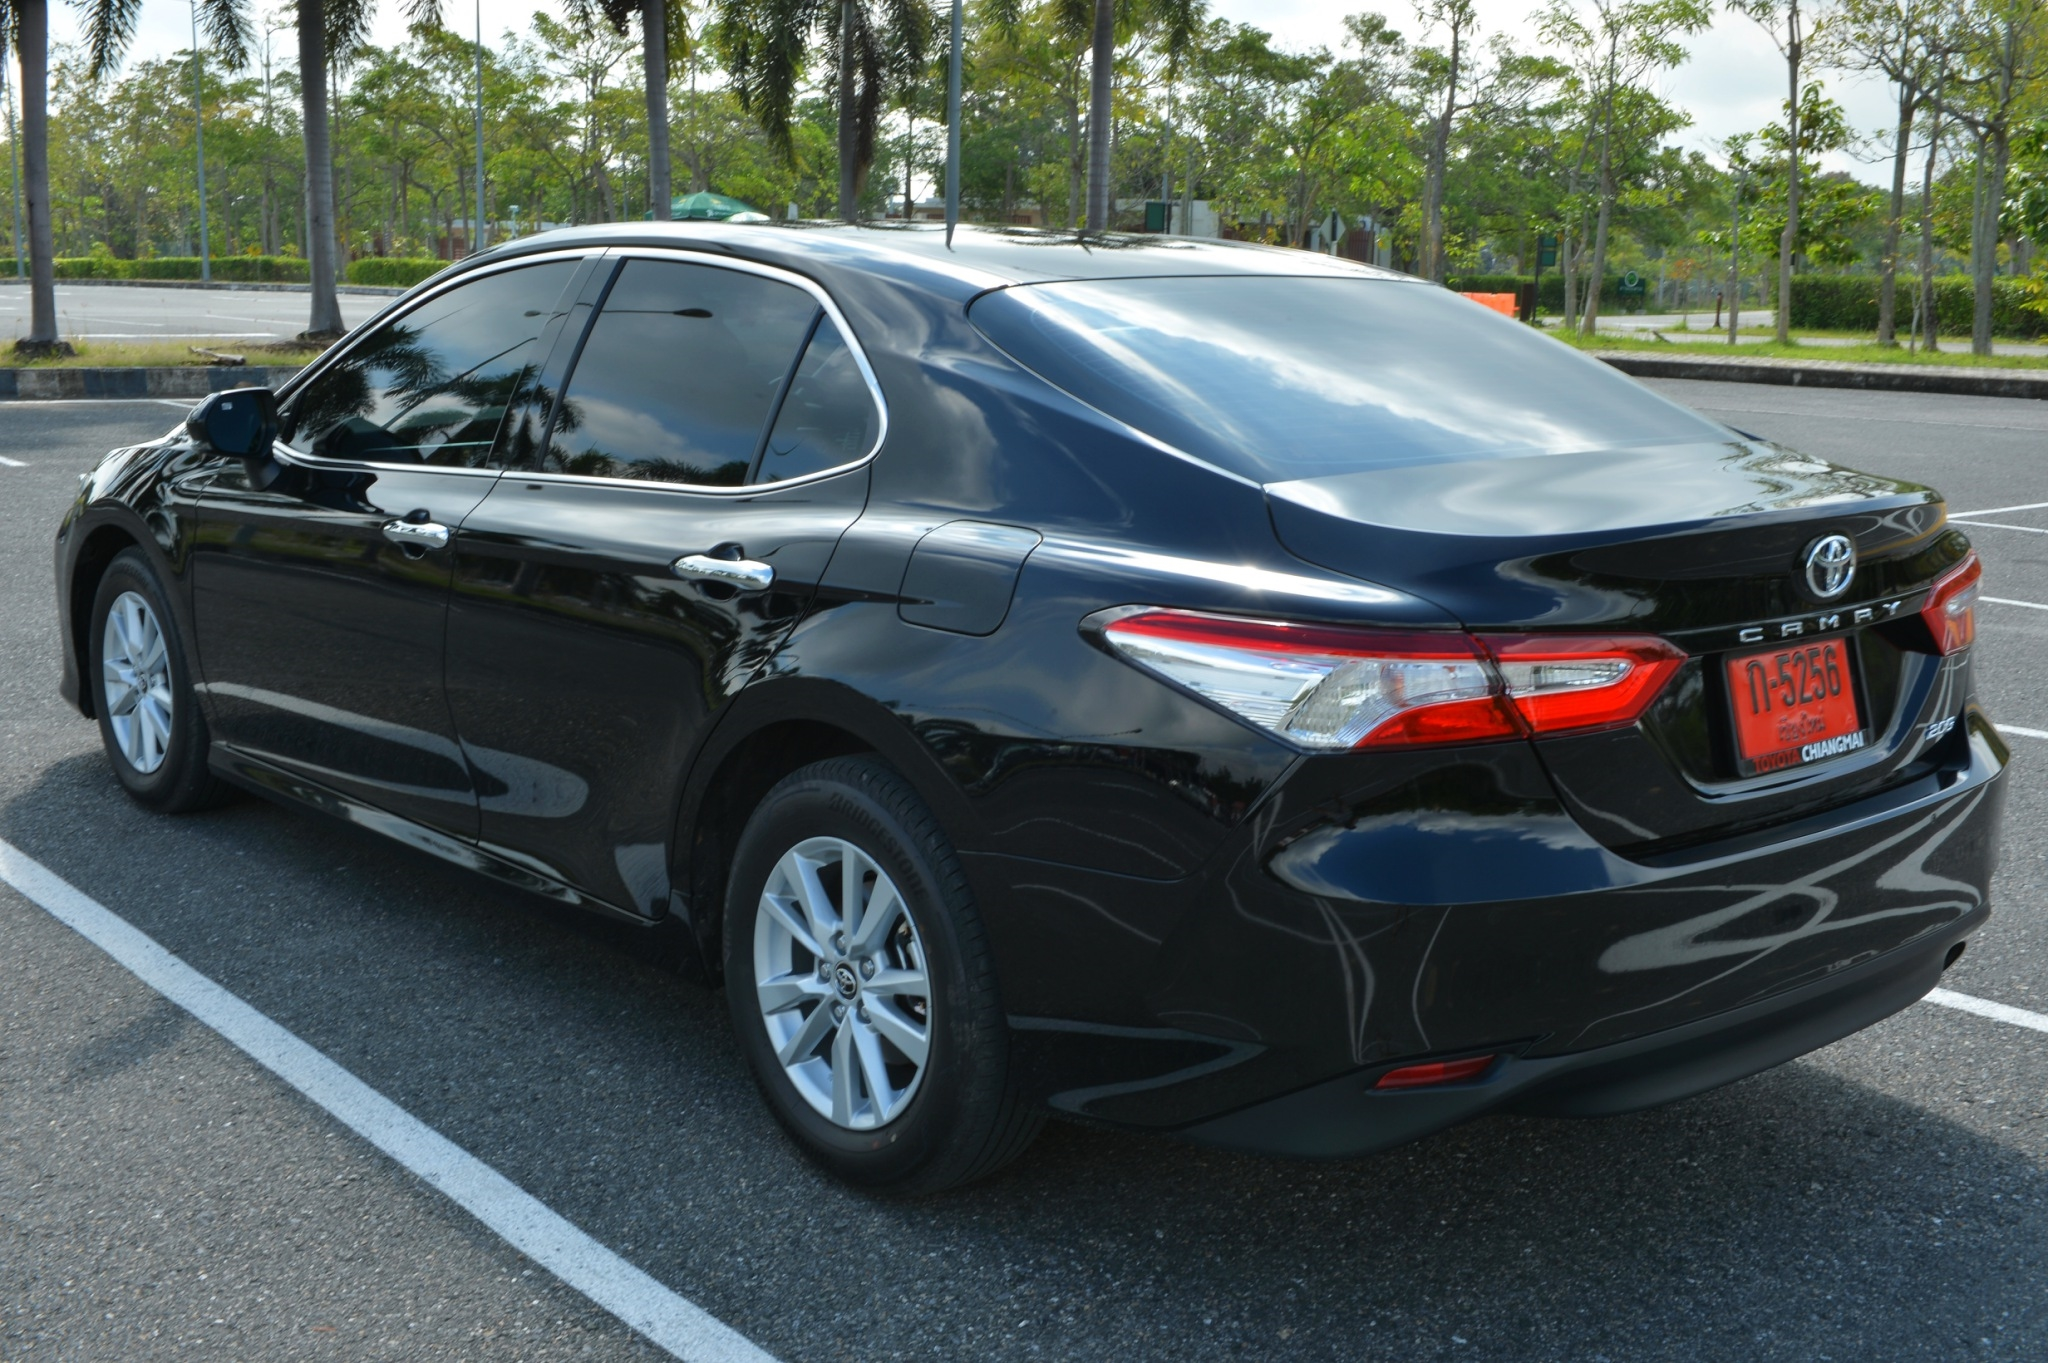 toyota camry exterior view black 2019 backside view